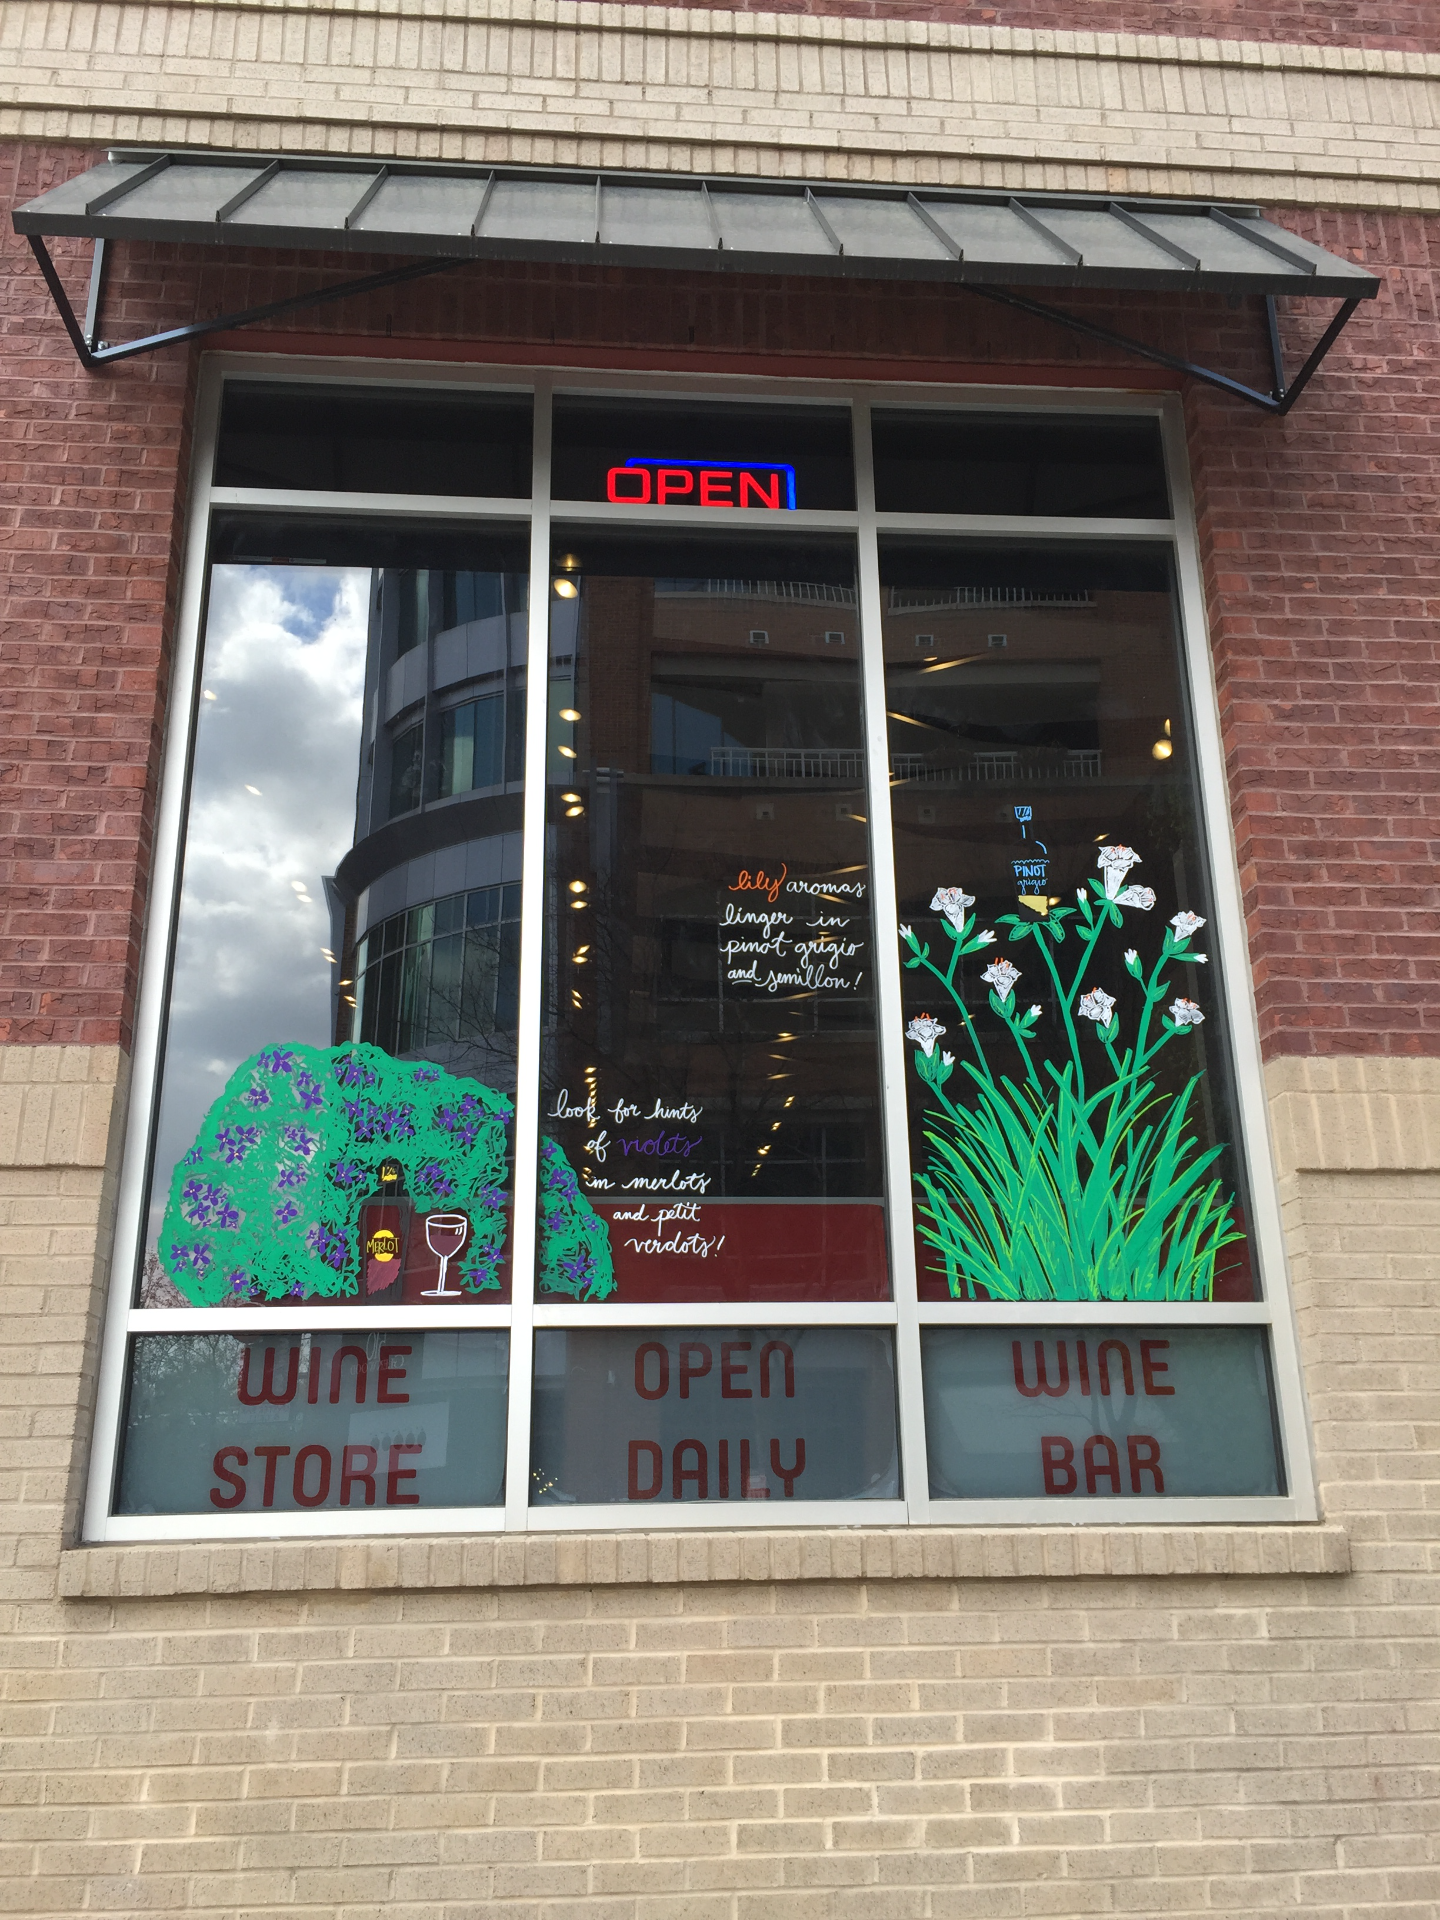 more window Art at WineFeed